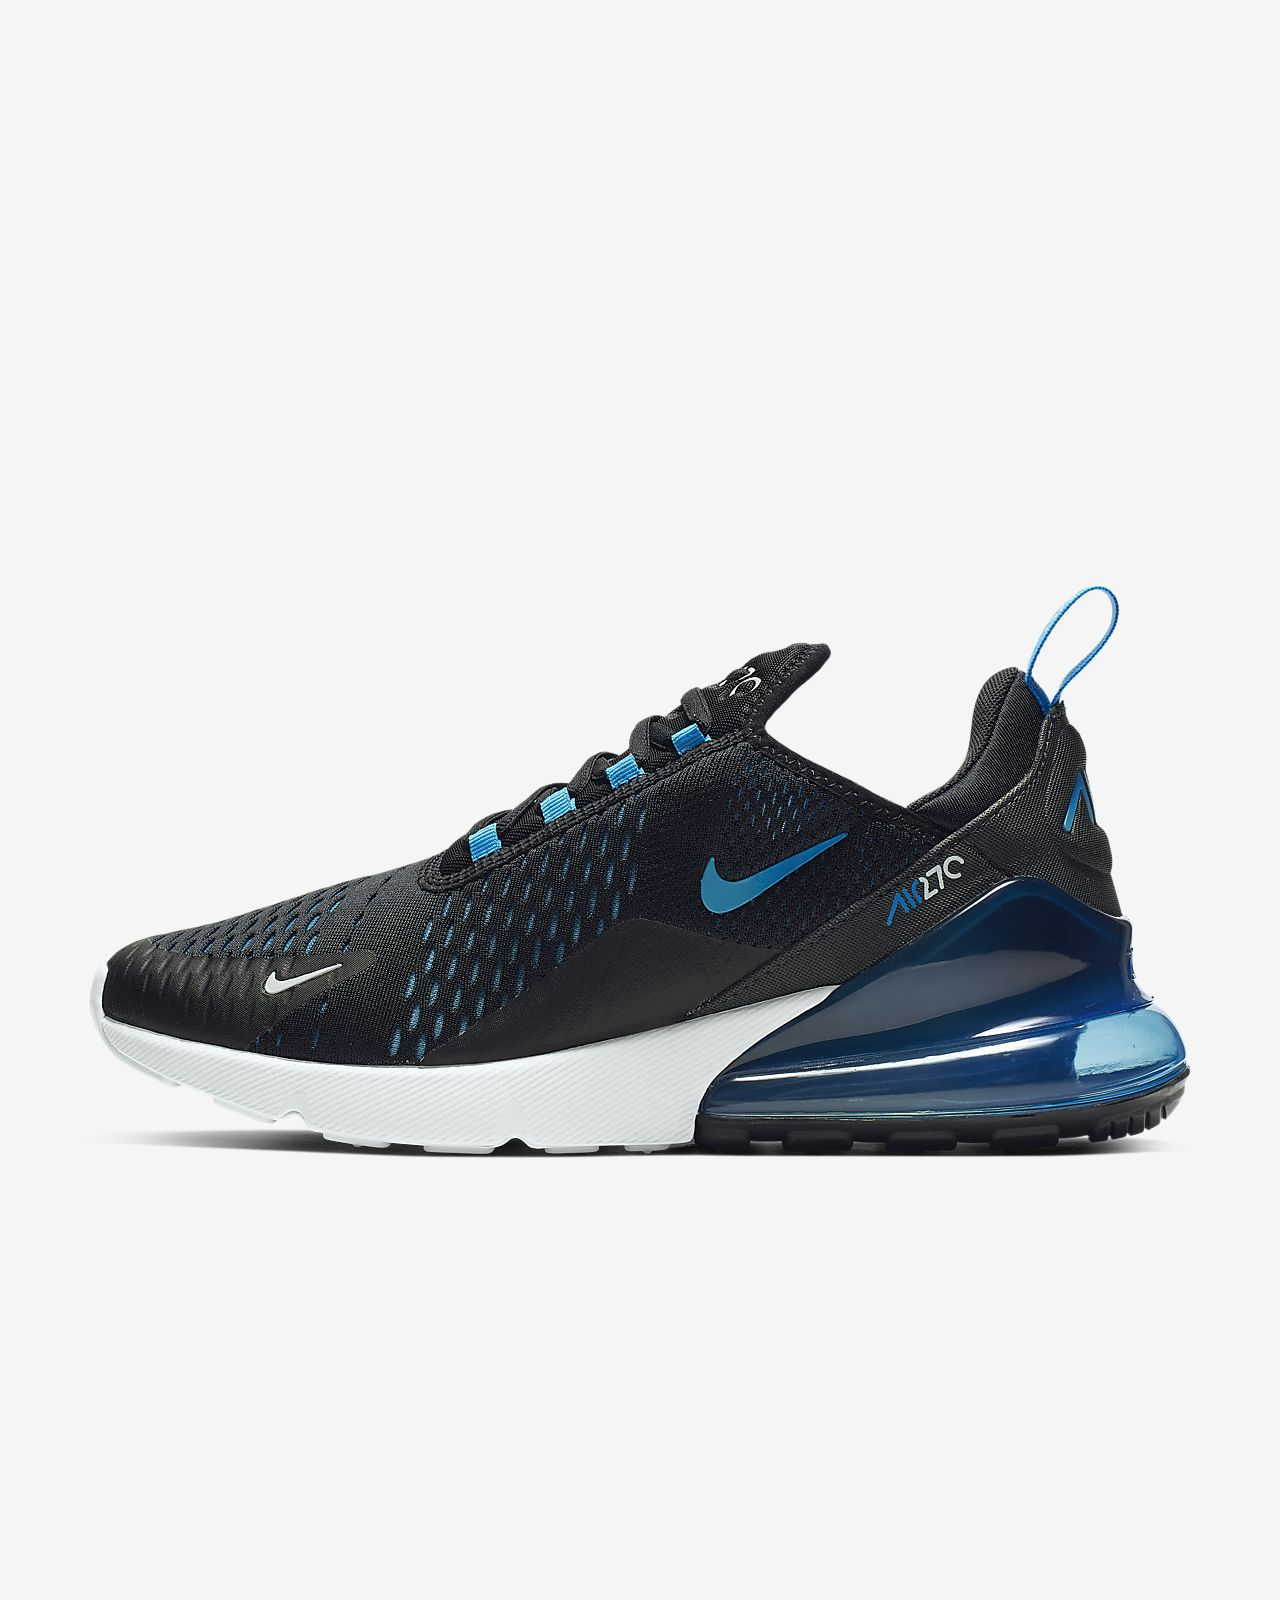 new concept 9da4e e4ced ... Nike Air Max 270 Herrenschuh